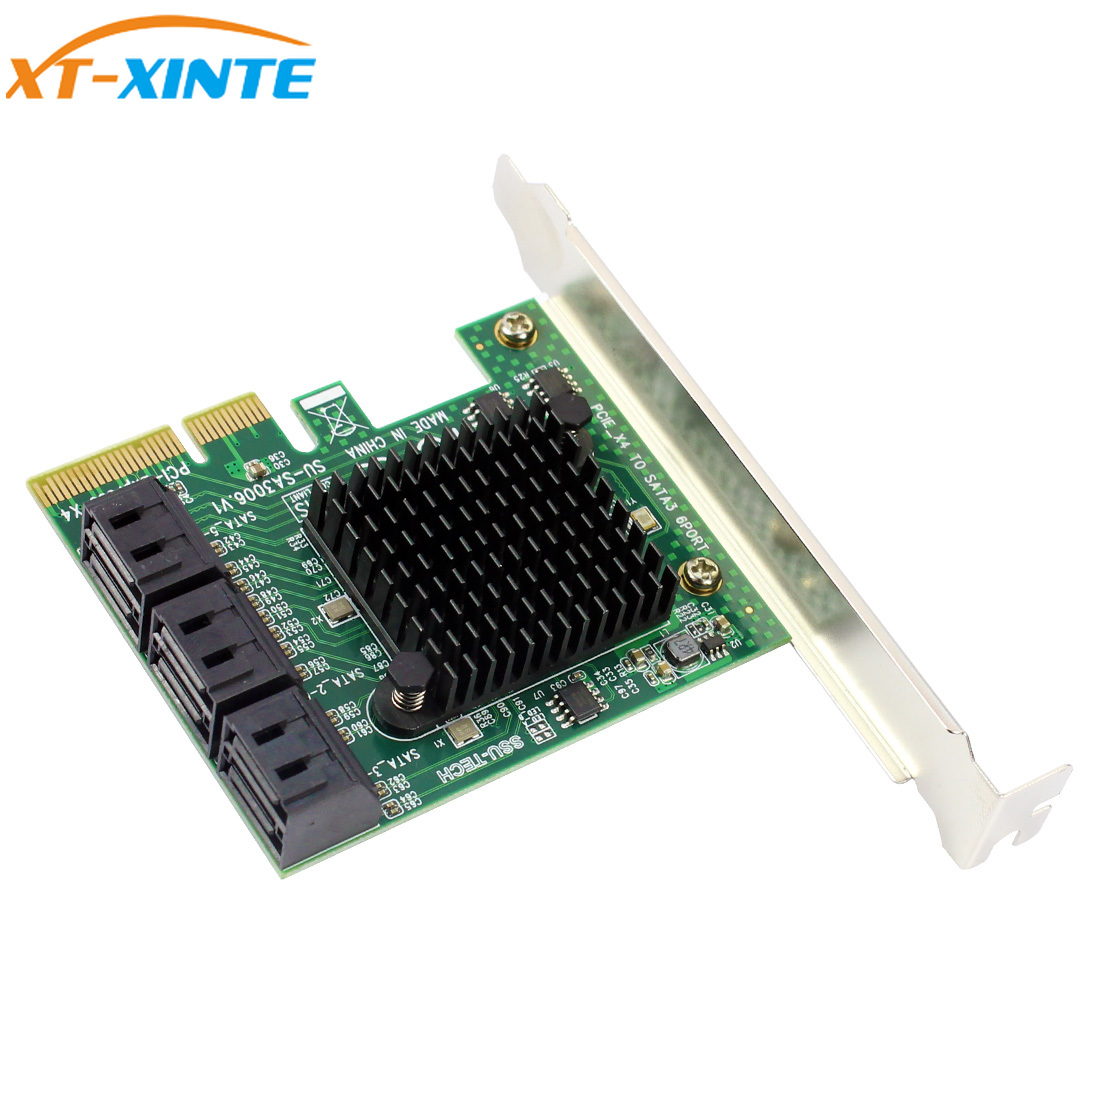 2-port Usb 3.1 Superspeed Type-c Pci Expansion Controller Card Adapter Sd Card Pokemon Cards Expansion Controller Computer & Office